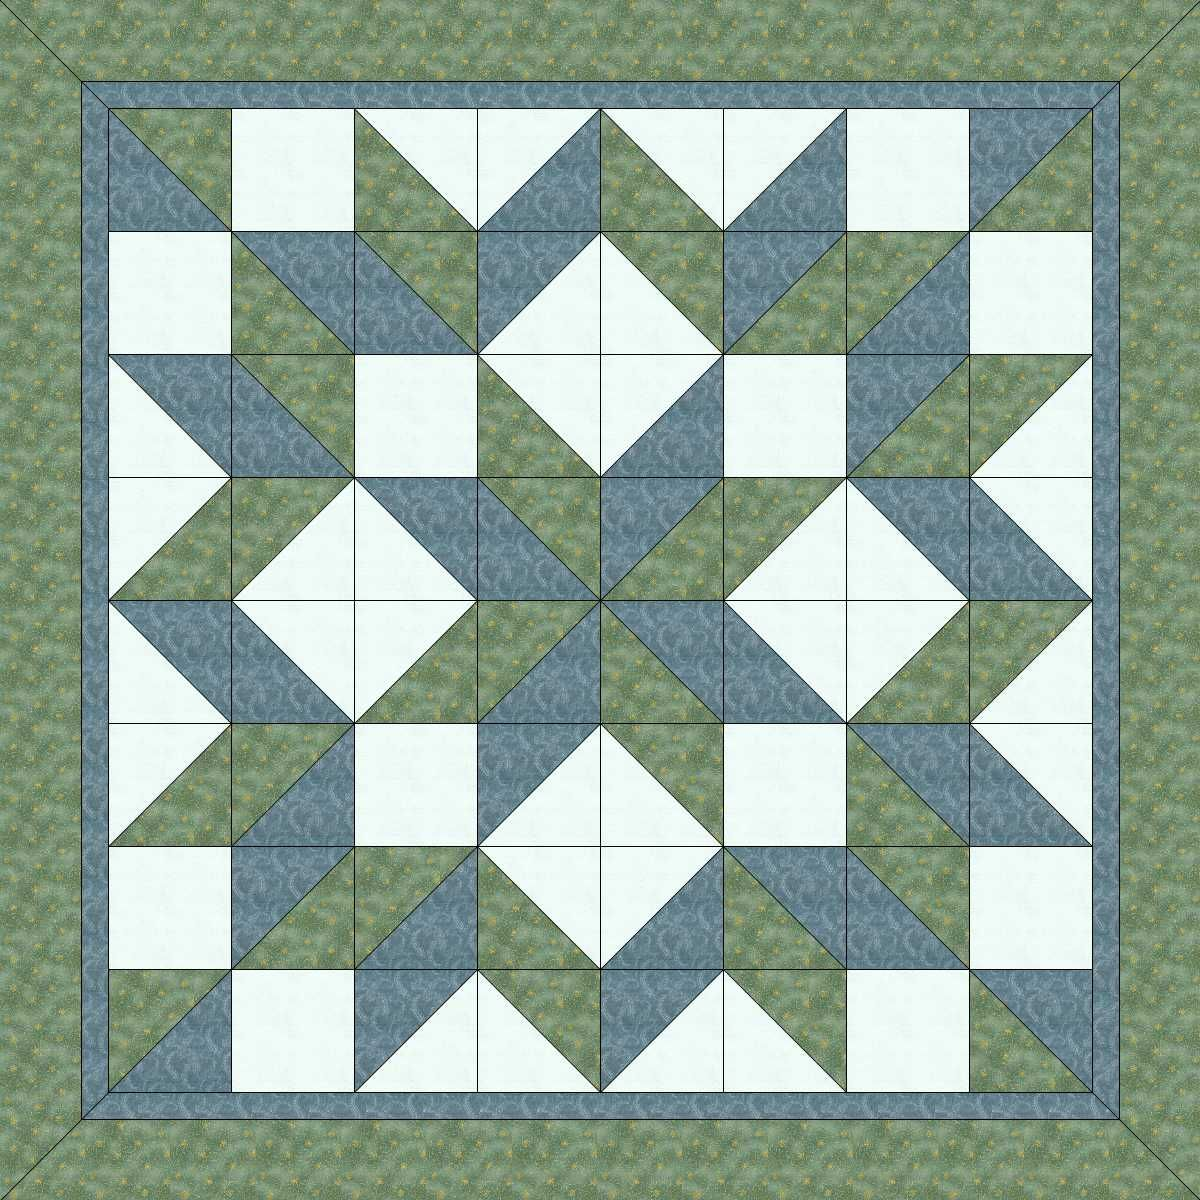 carpenter\'s star quilt images   Thread: Simplest requests can turn ...